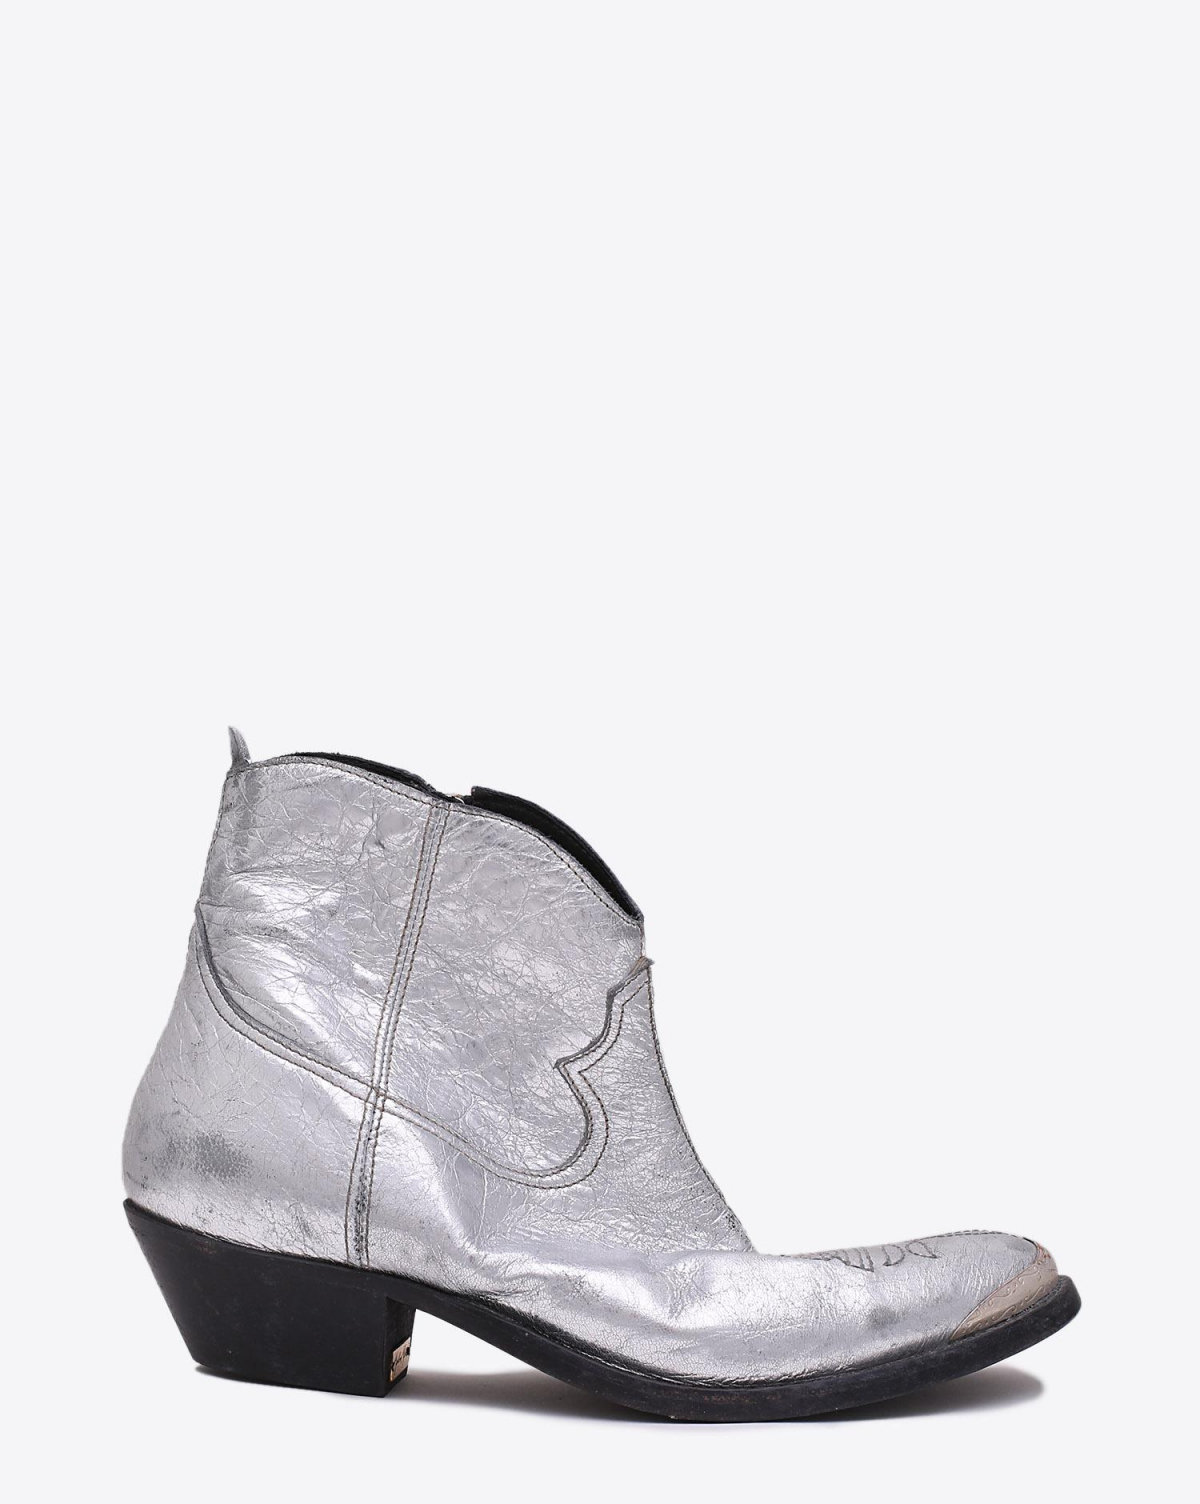 Golden Goose Woman Chaussures Collection Boots Young Gold And Silver